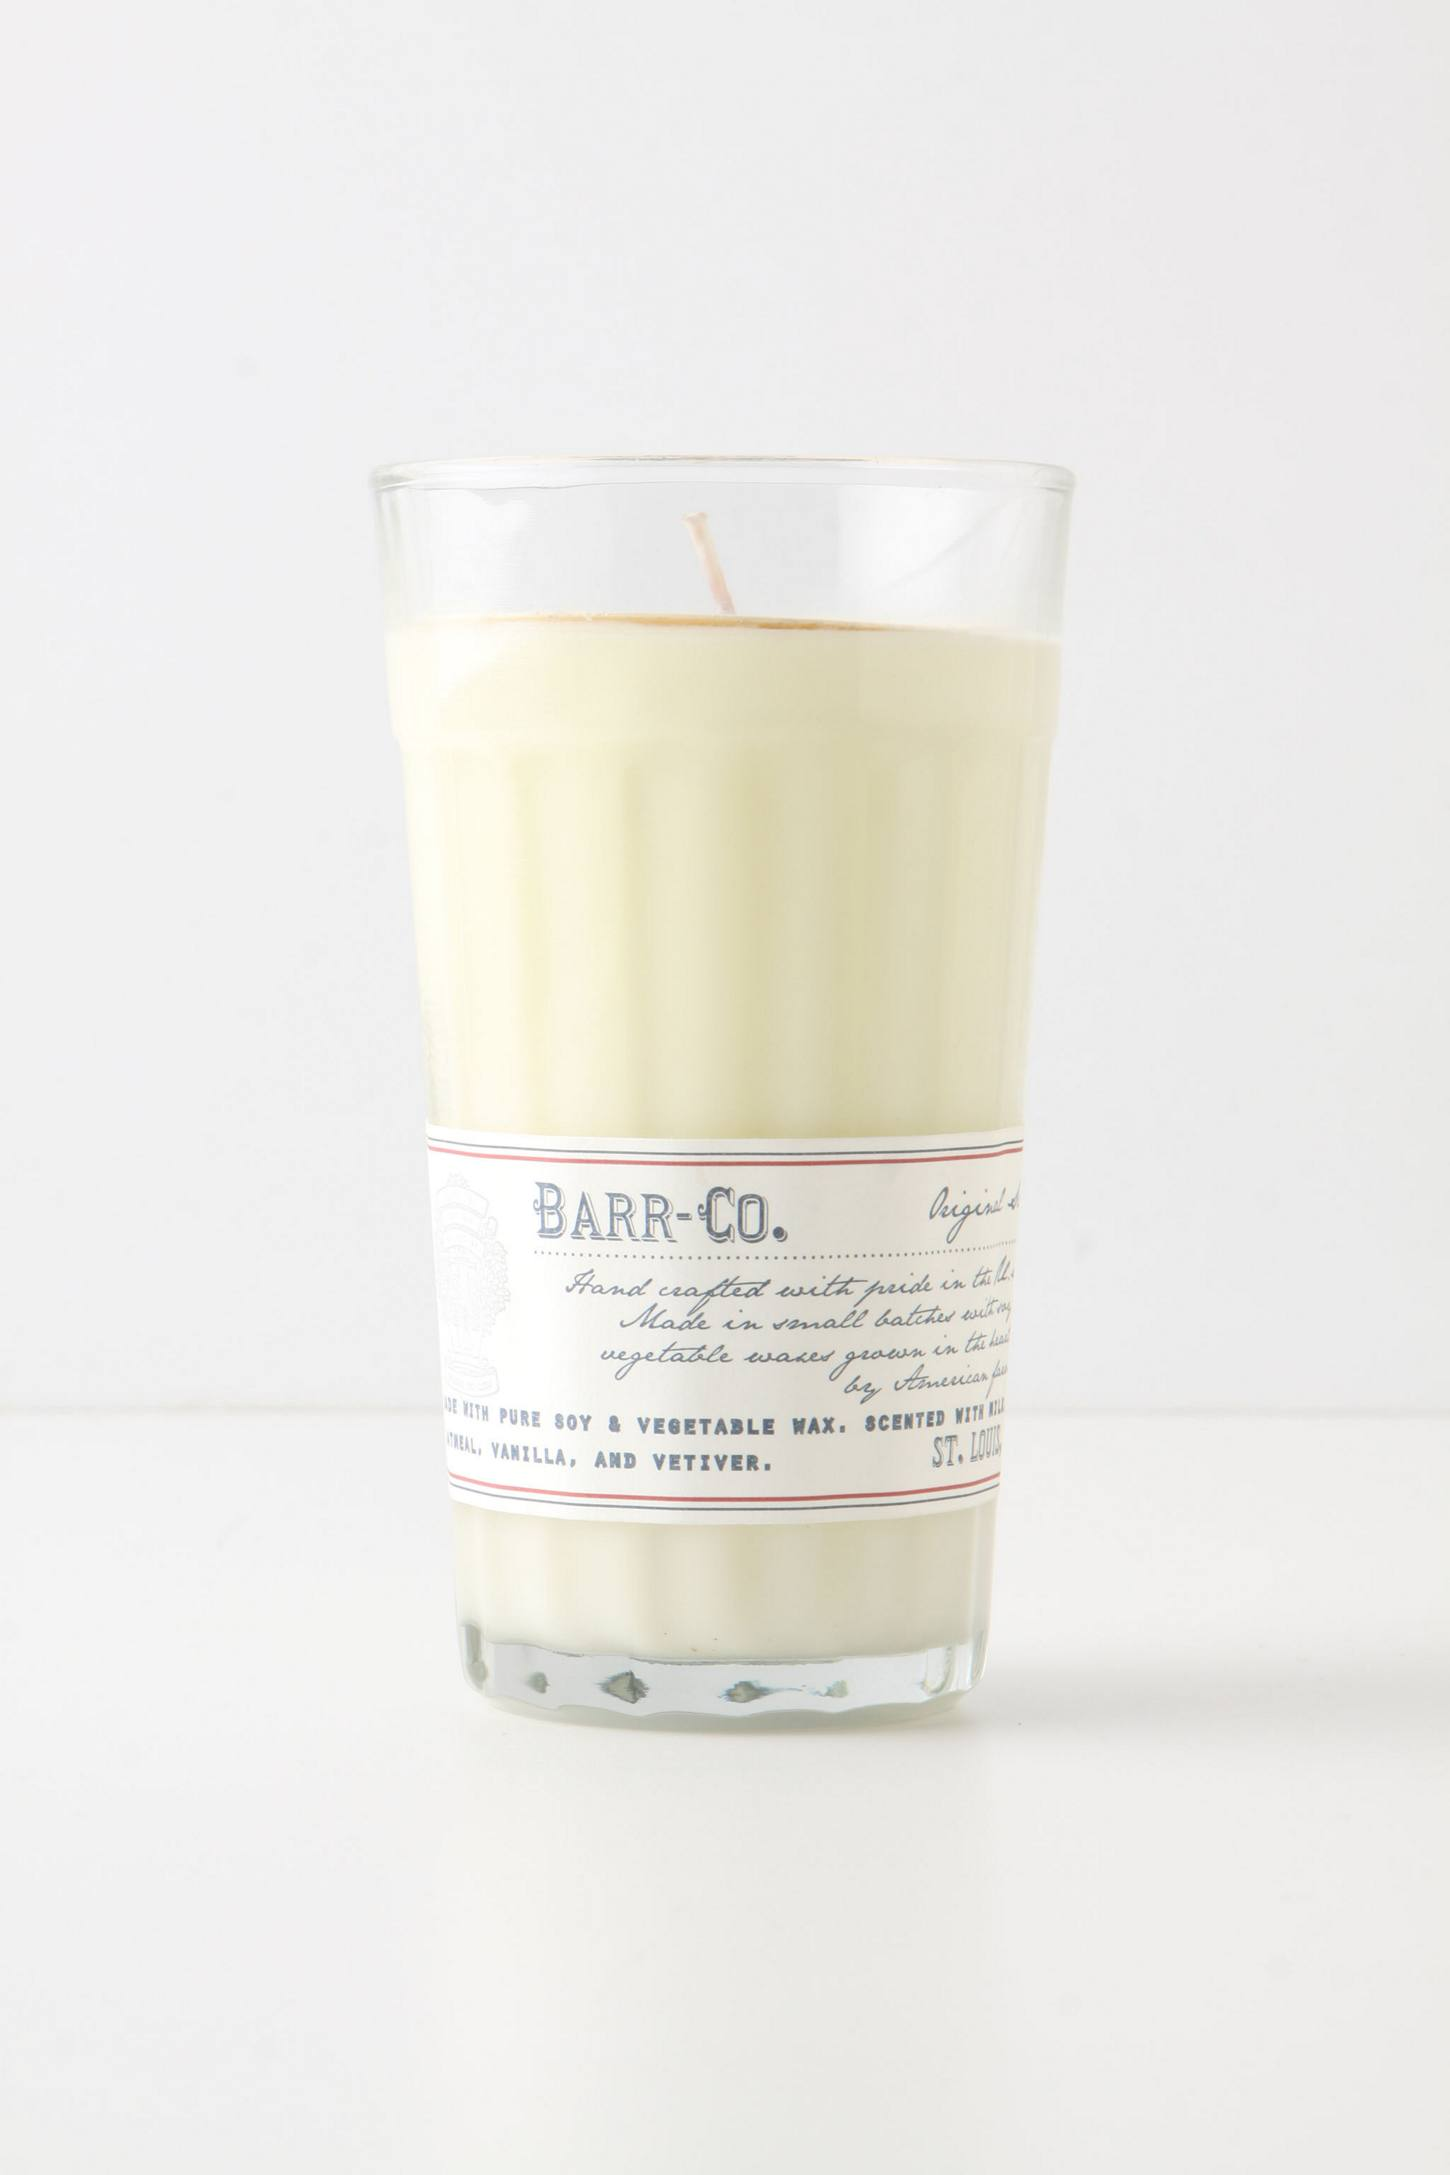 Barr-Co. Candle